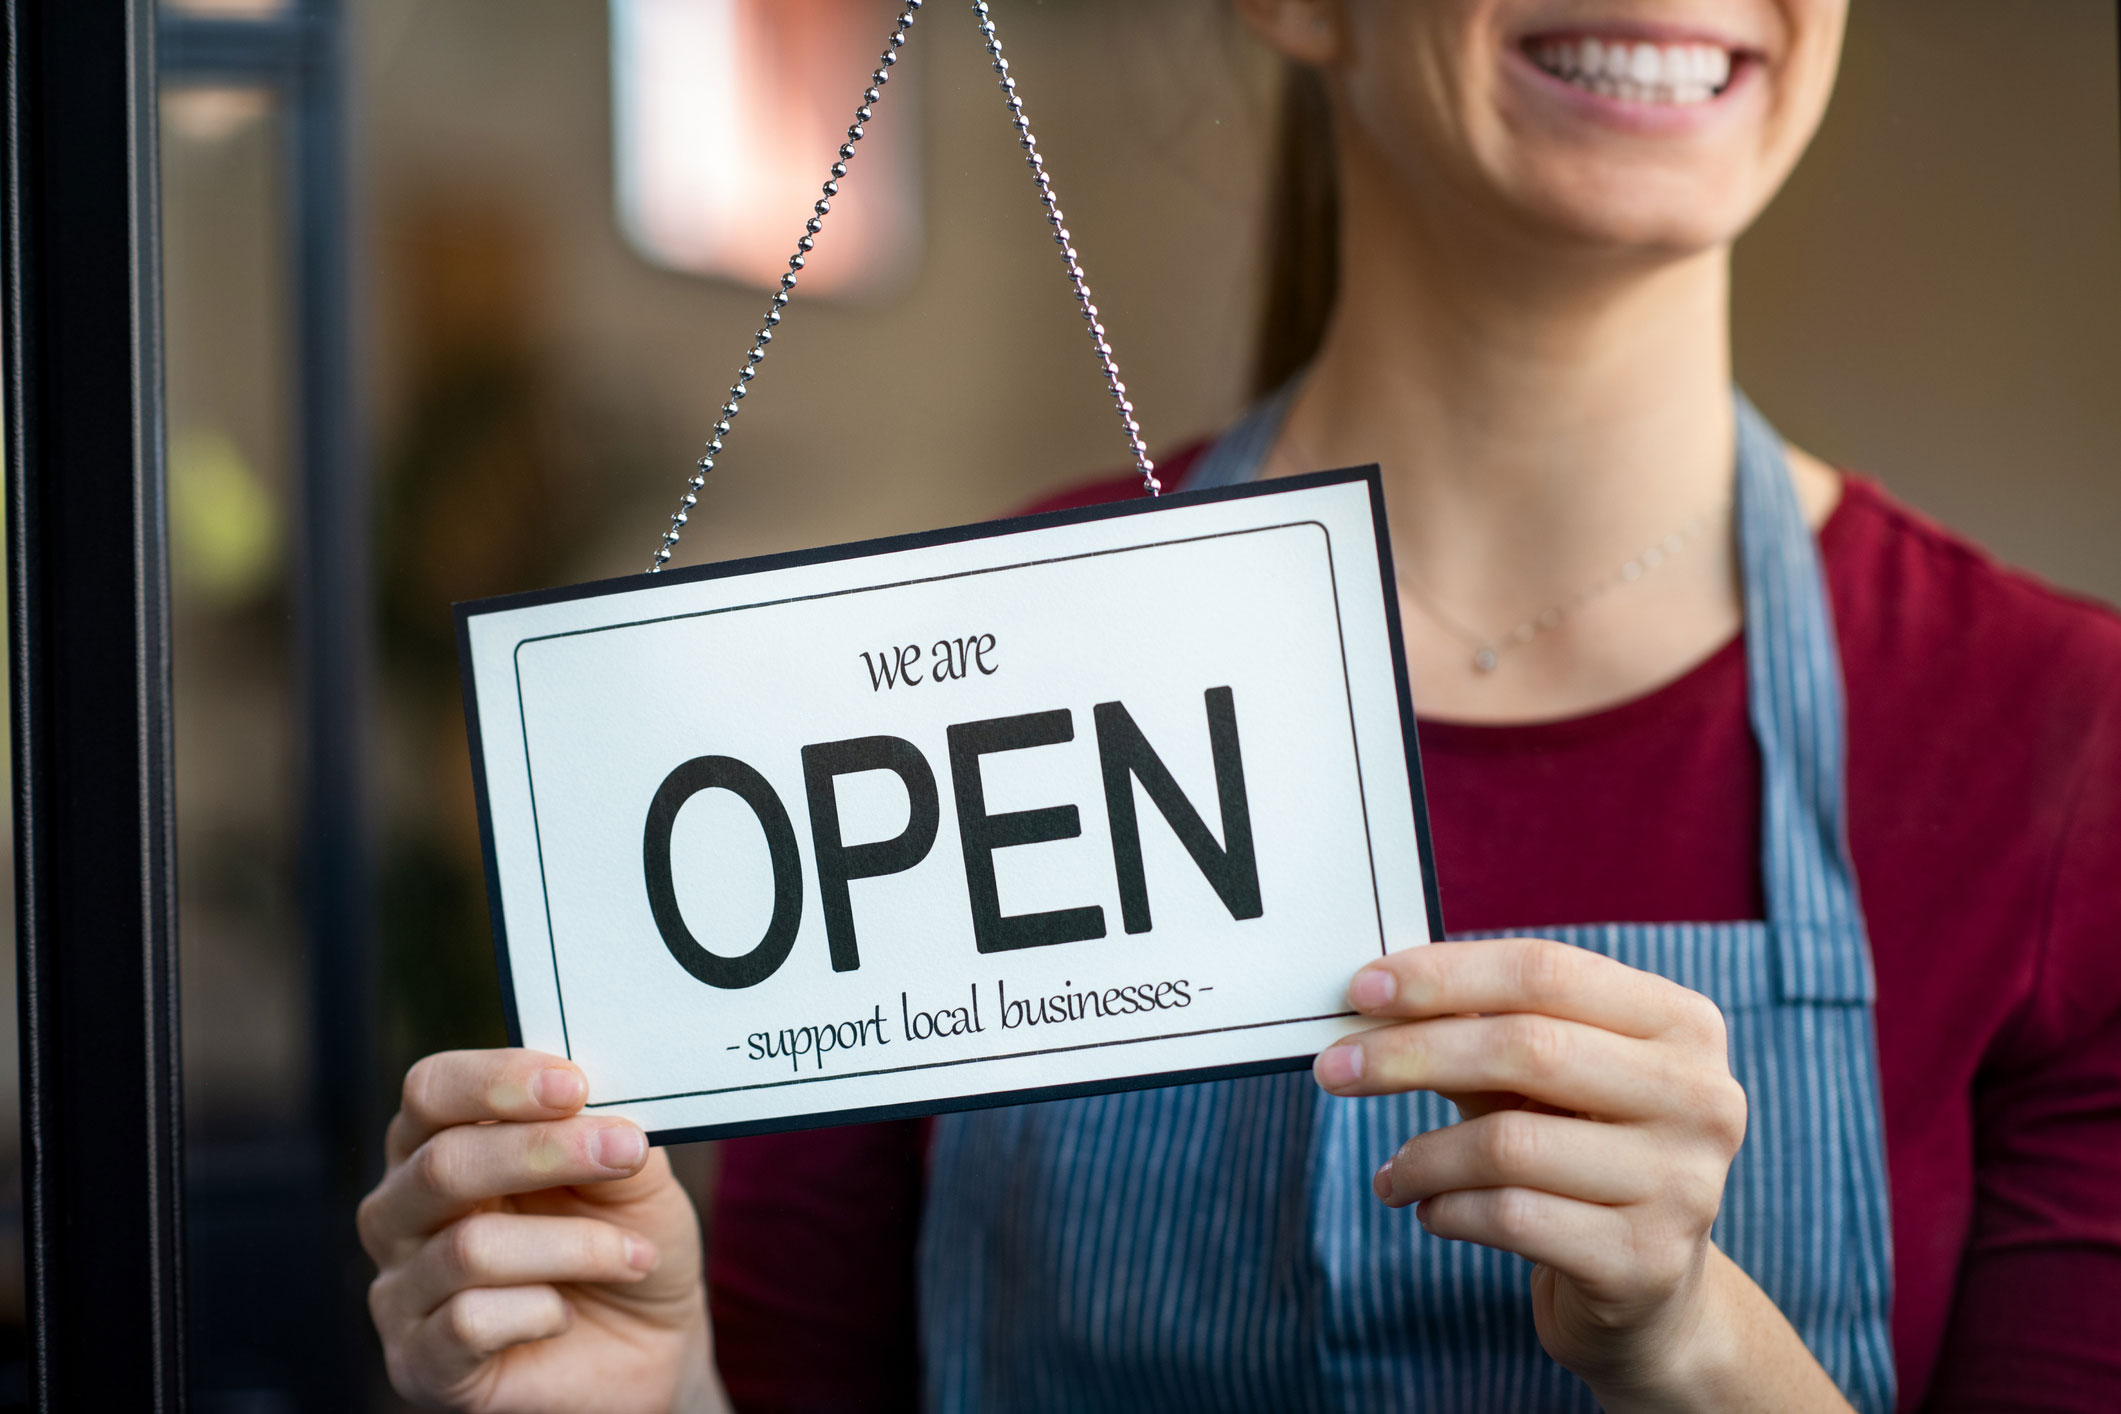 "Small business owner smiling while turning the sign for the reopening of the place after the quarantine due to covid-19. Happy businesswoman standing at her restaurant or coffee shop gate with open signboard. Close up of woman""u2019s hands holding sign now we are open support local business."